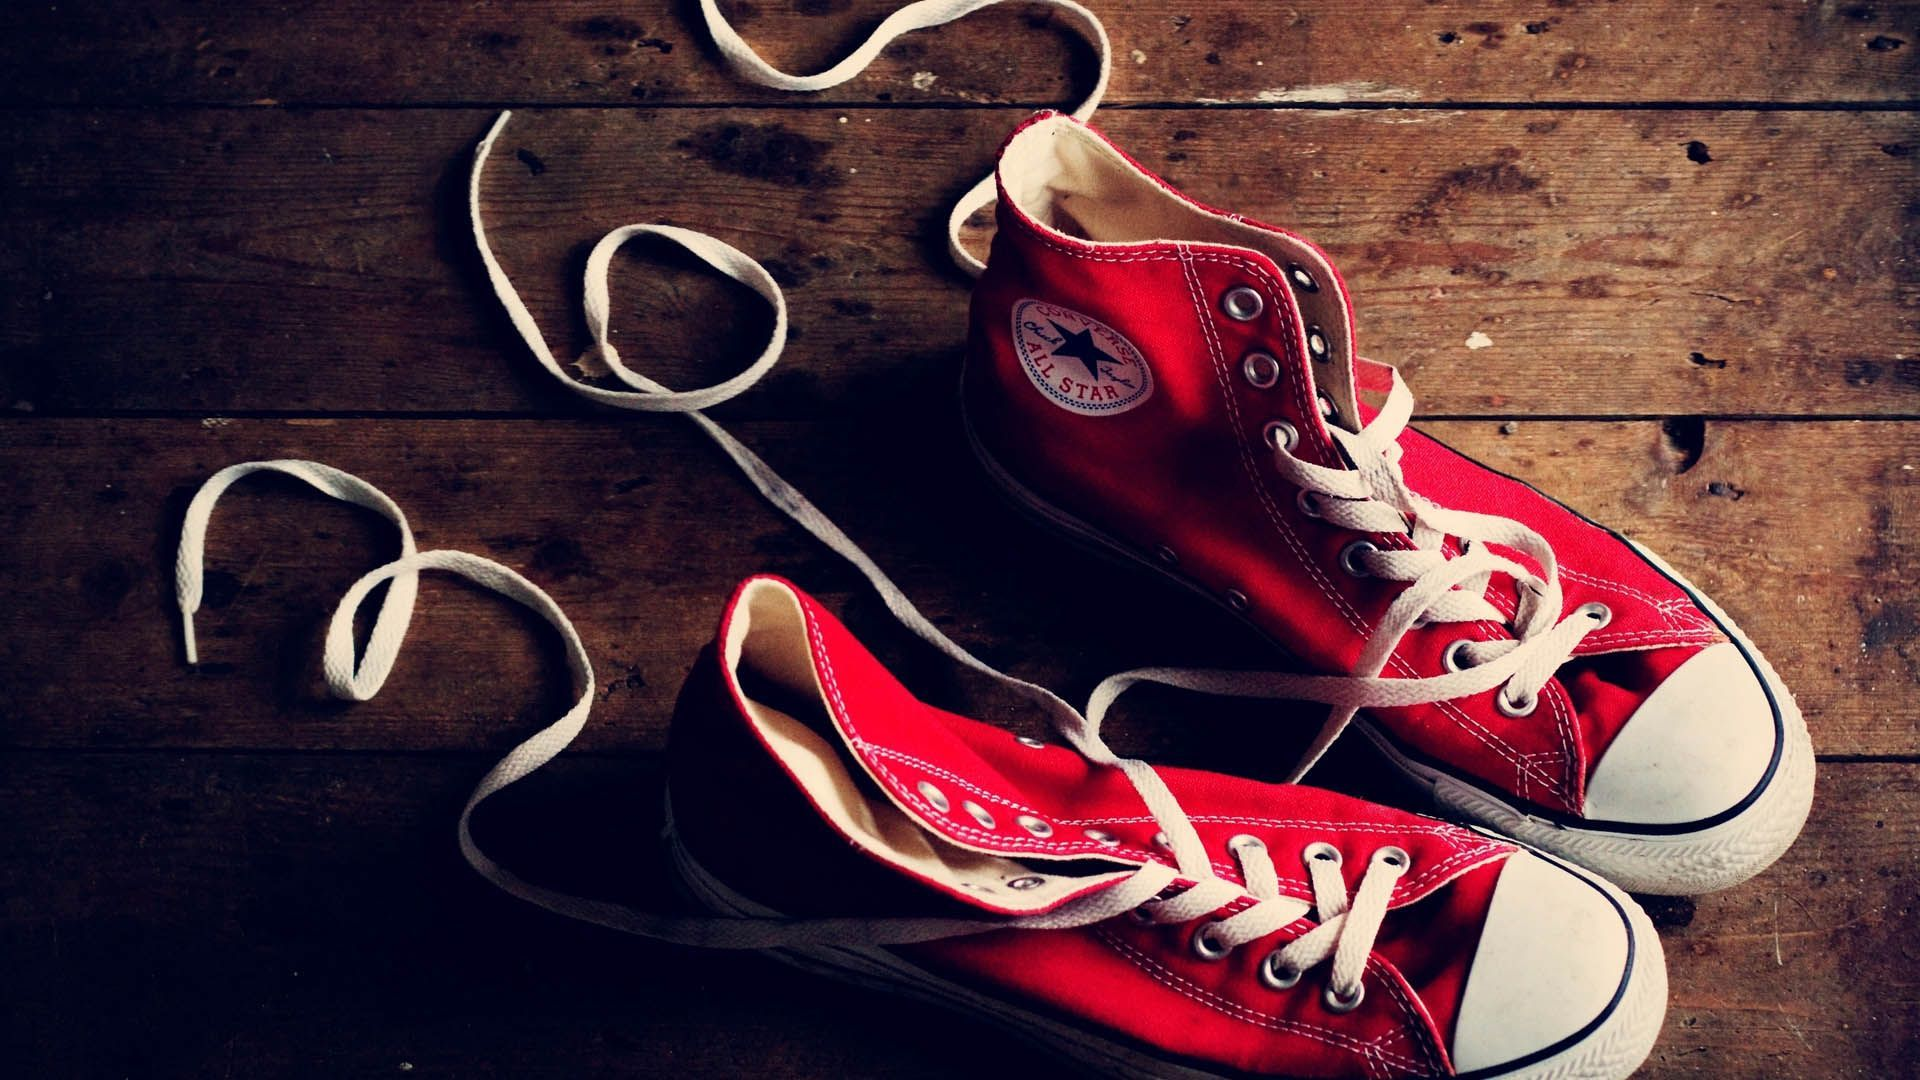 41 Converse HD Wallpapers | Backgrounds - Wallpaper Abyss